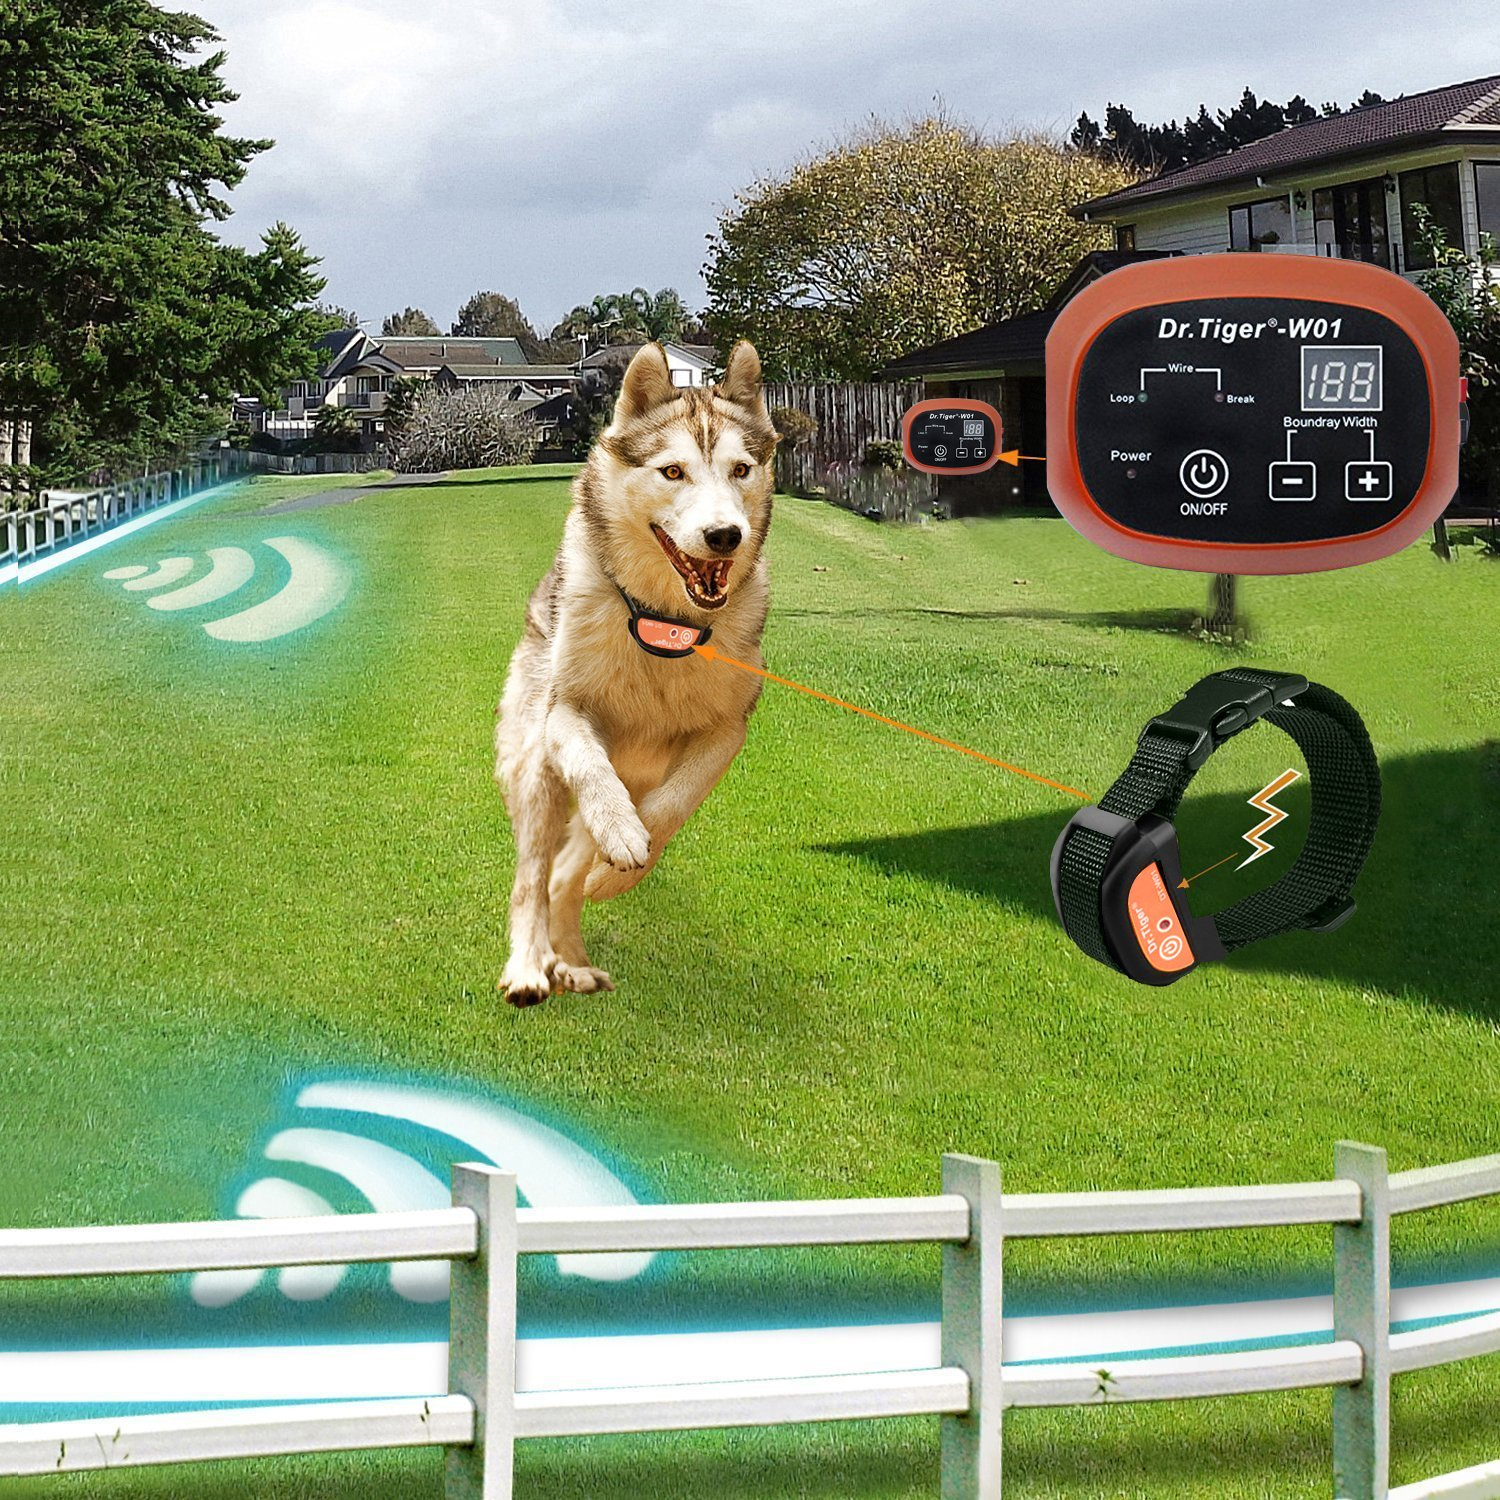 Coffee Dr.Tiger Dr. Tiger 2 Receiver Electric Dog Fence with Rechargeable Shock Collar Wire In-Ground Invisible Dog or Cat Containment Fence System